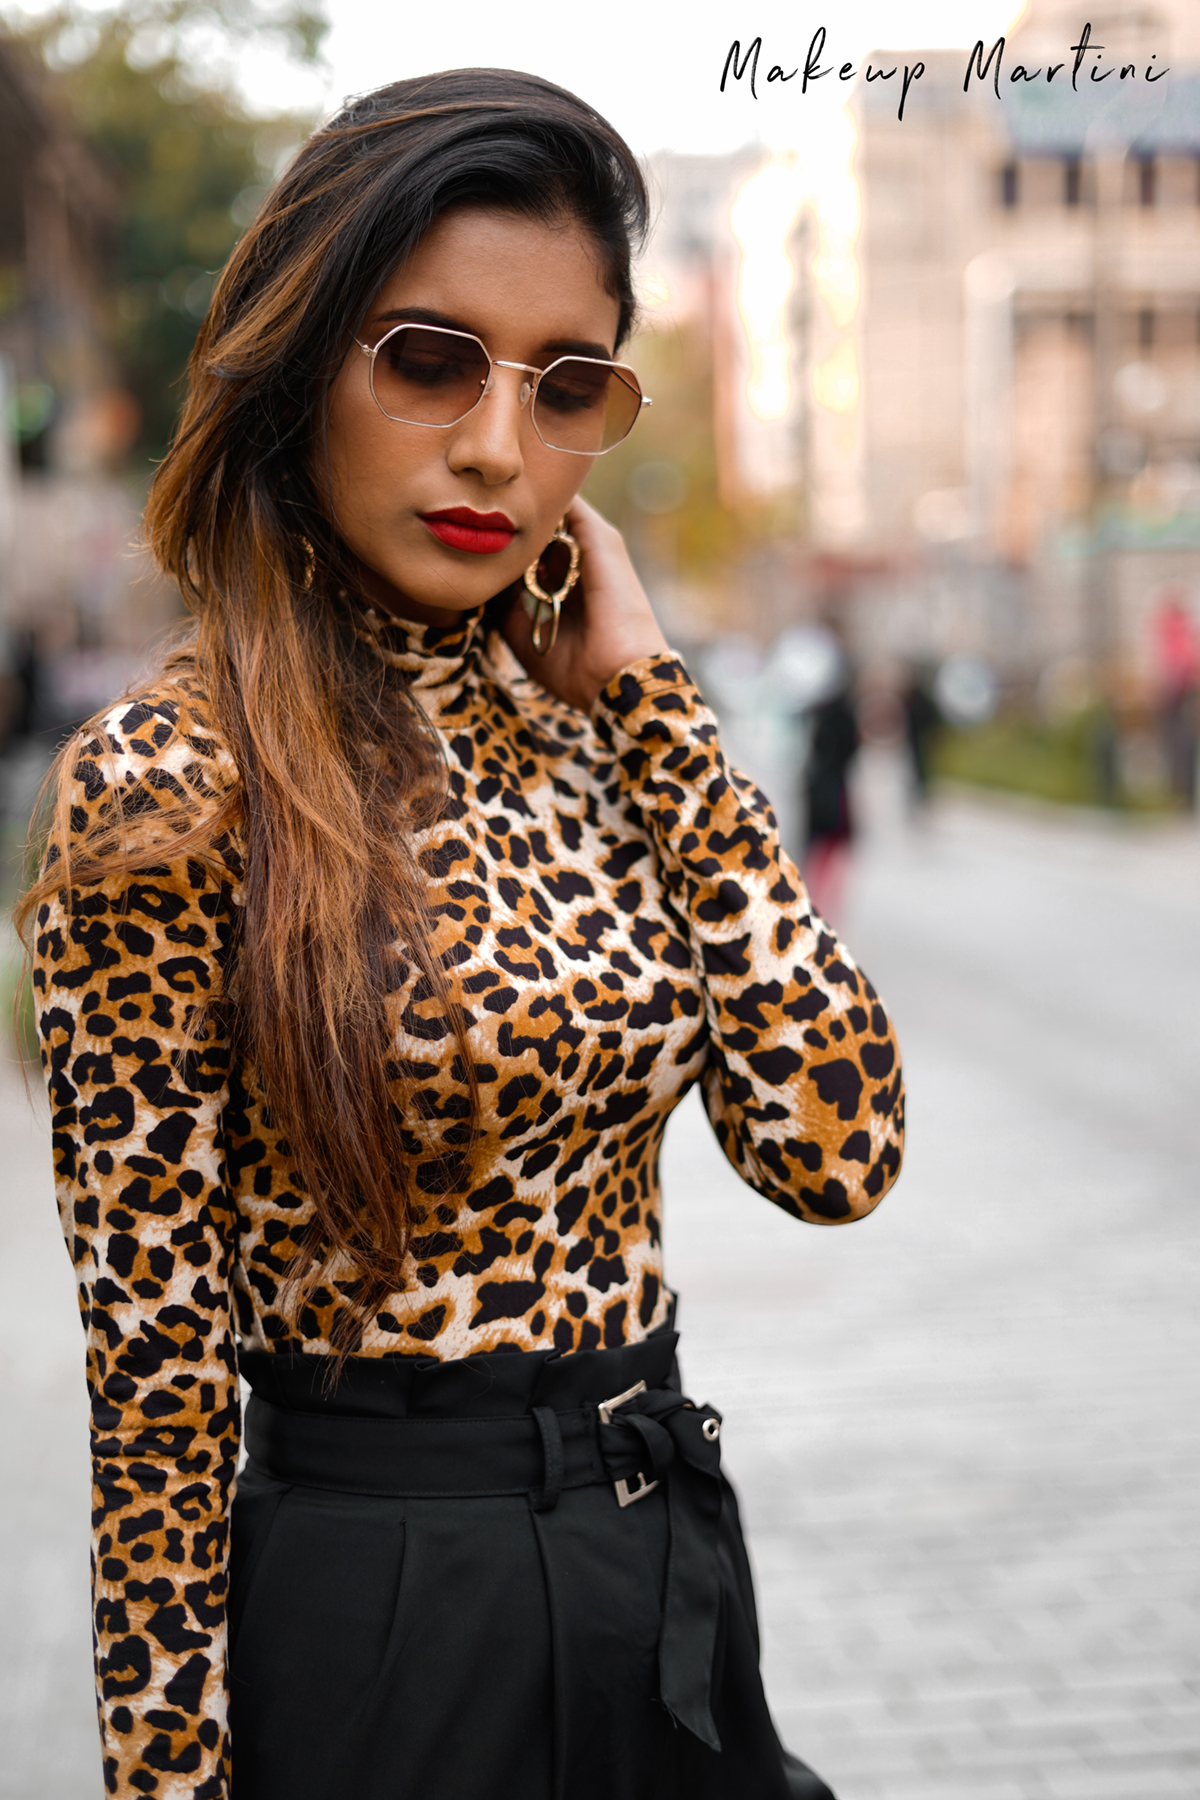 Leopard Printed Mock Neck Top & Black Pleated Pants